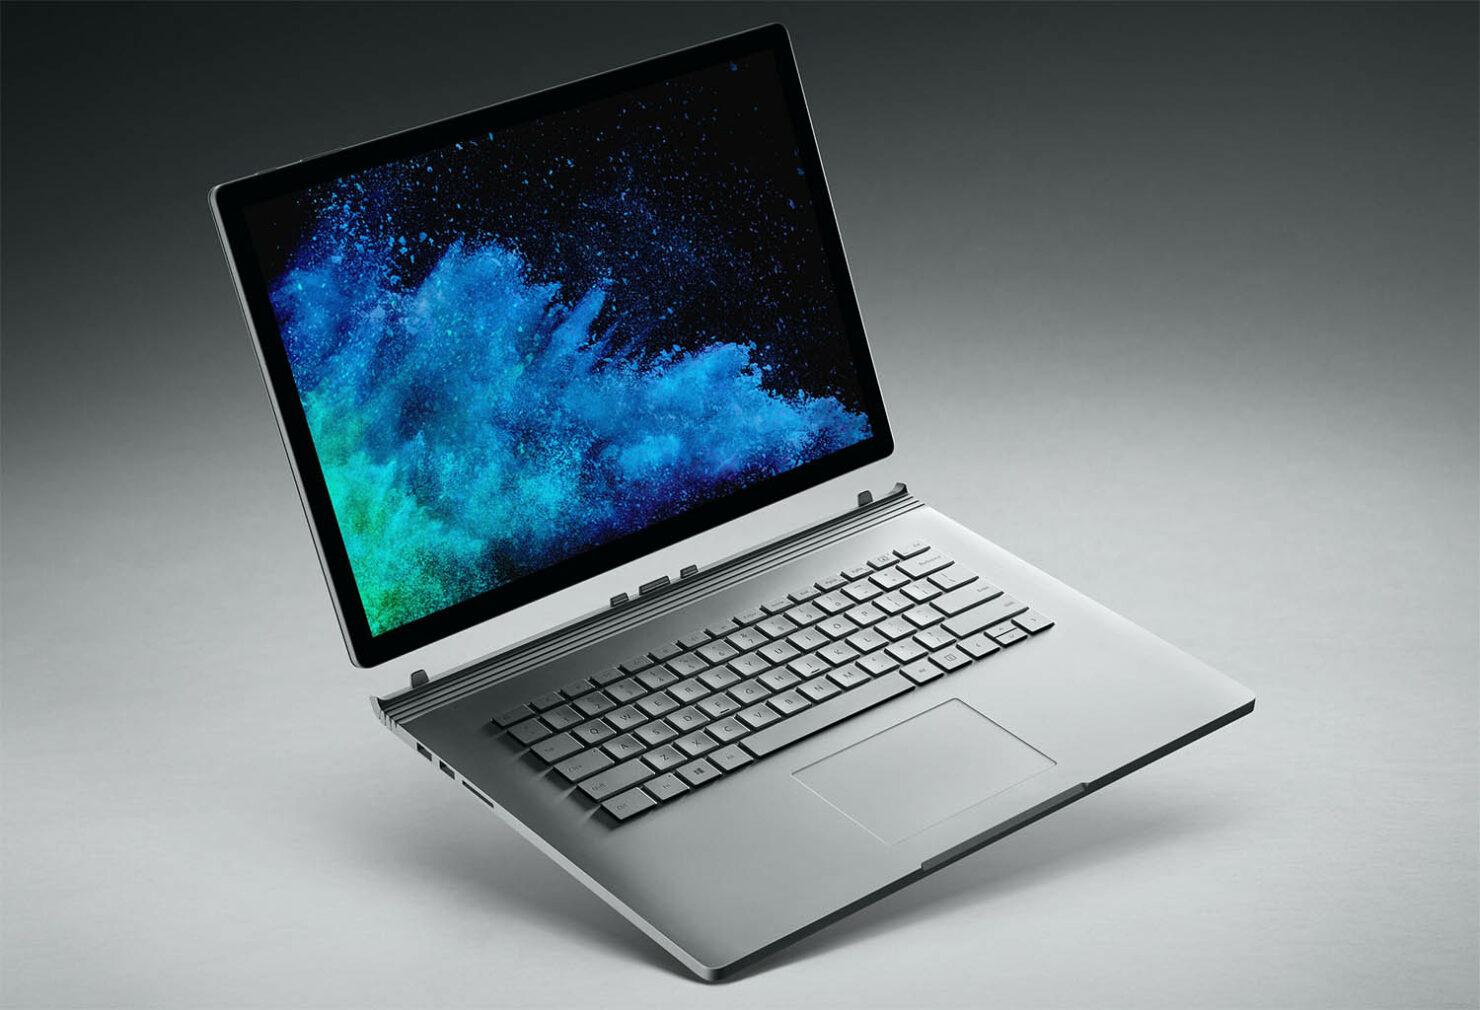 New Leak Highlights Microsoft Surface Book 3, Surface Go 2 Specs